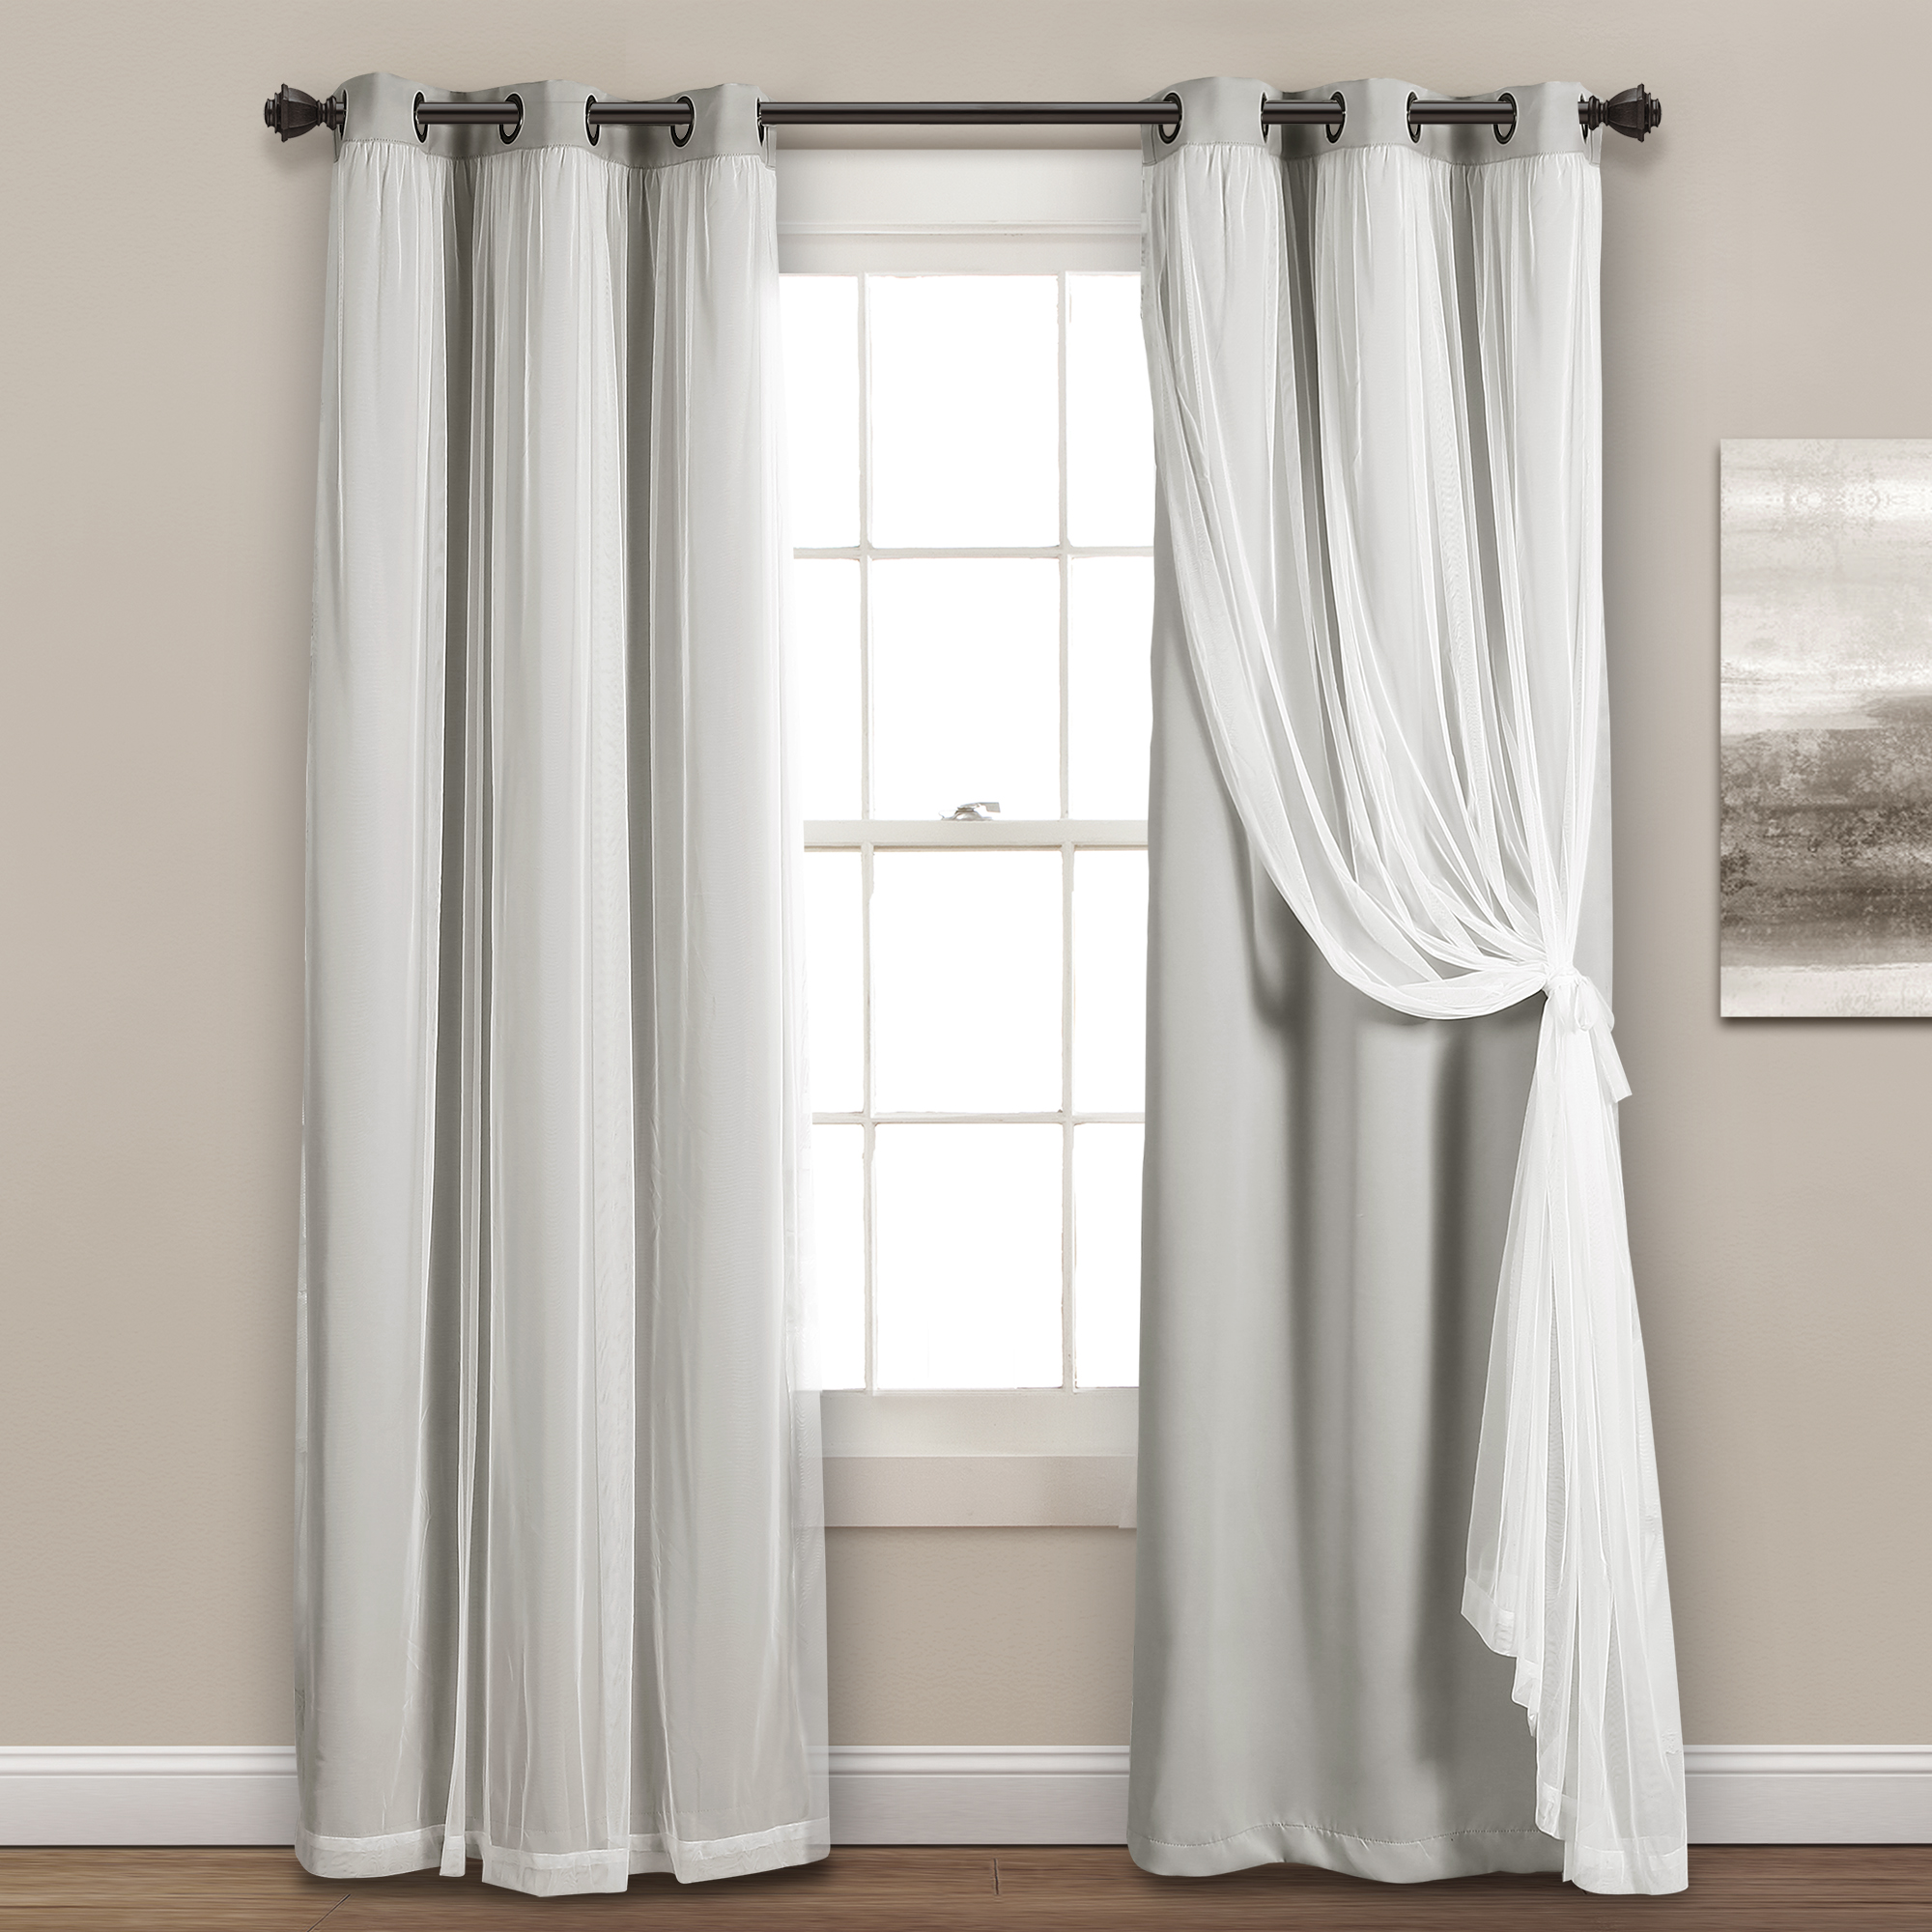 lush decor grommet sheer window curtain panels with insulated blackout lining solid color 100 polyester light gray 84 l x 38 w set of 2